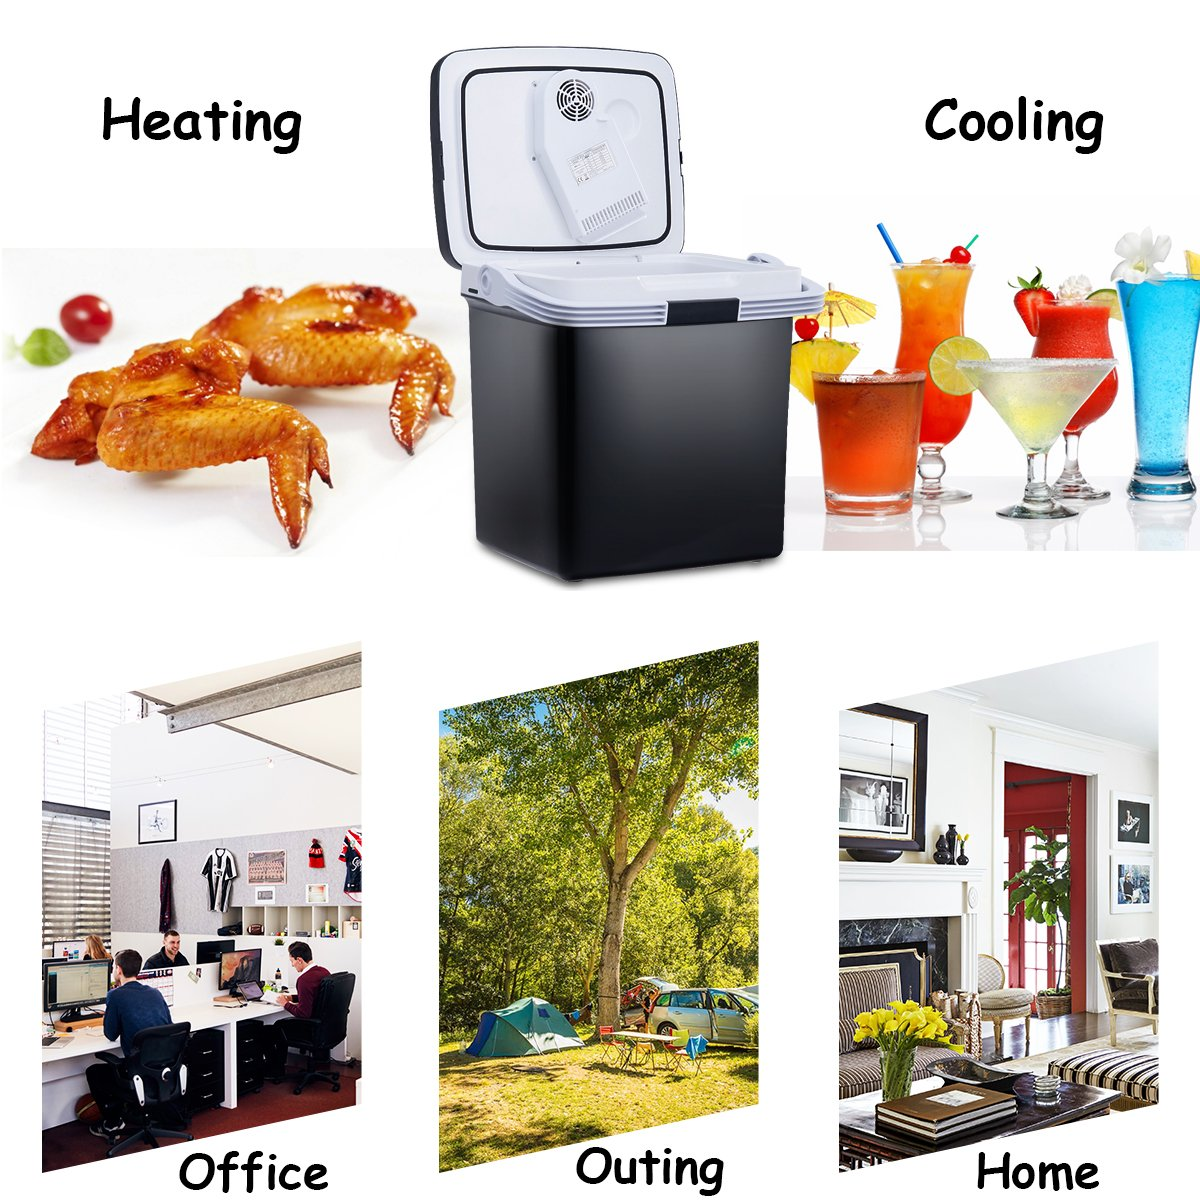 Costway Portable Fridge Cooler and Warmer 27.5 Quarts Electric Mini Thermoelectric Dual Cooling Warming Digital Plug In Refrigerator for Car, Travel, Beach, Office (Black) by COSTWAY (Image #2)